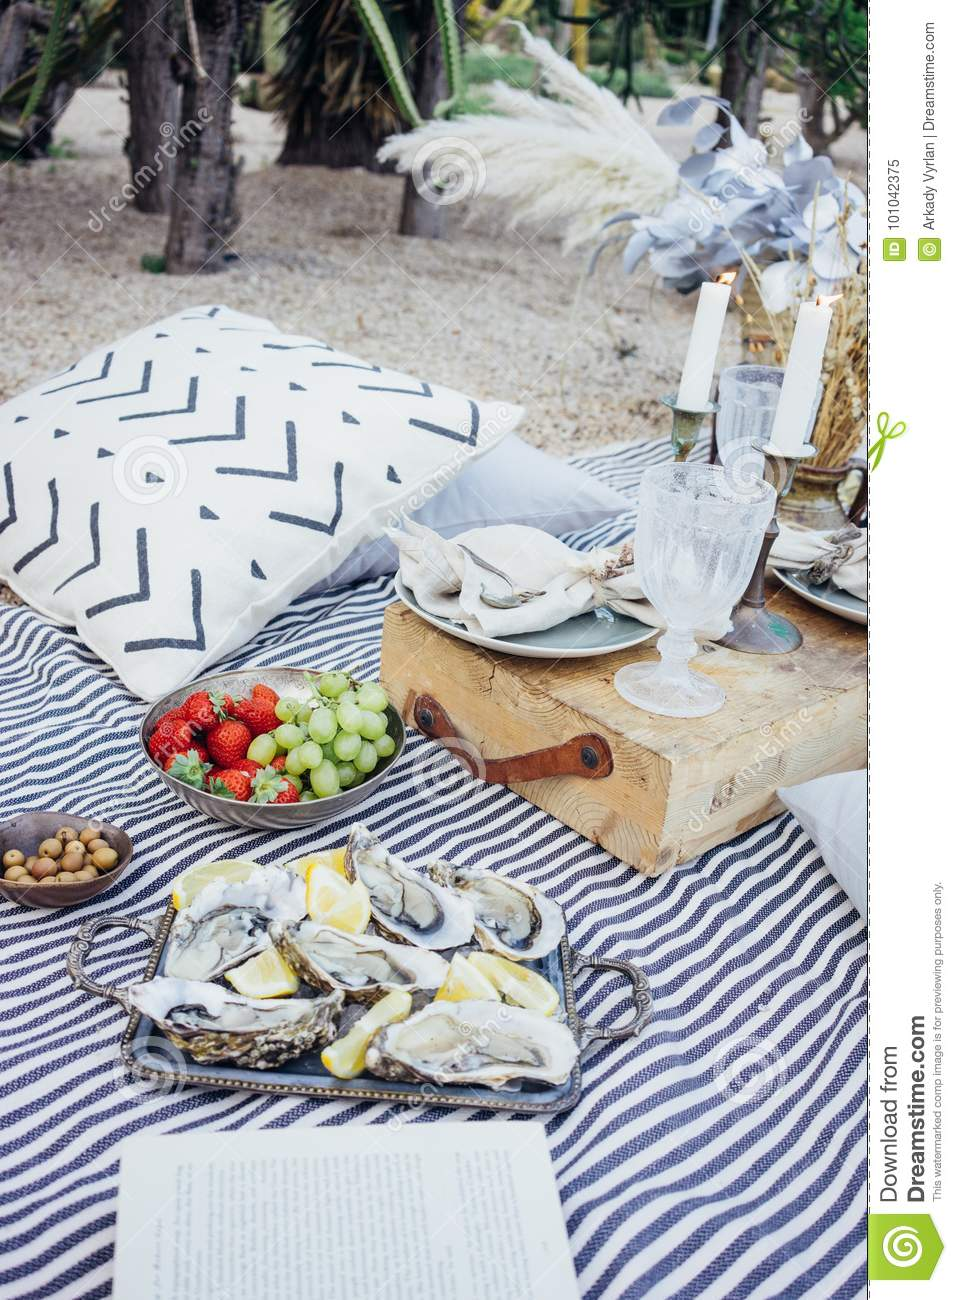 Picnic Decor Beautiful Setup Picnic Table Stock Image Image Of Decor